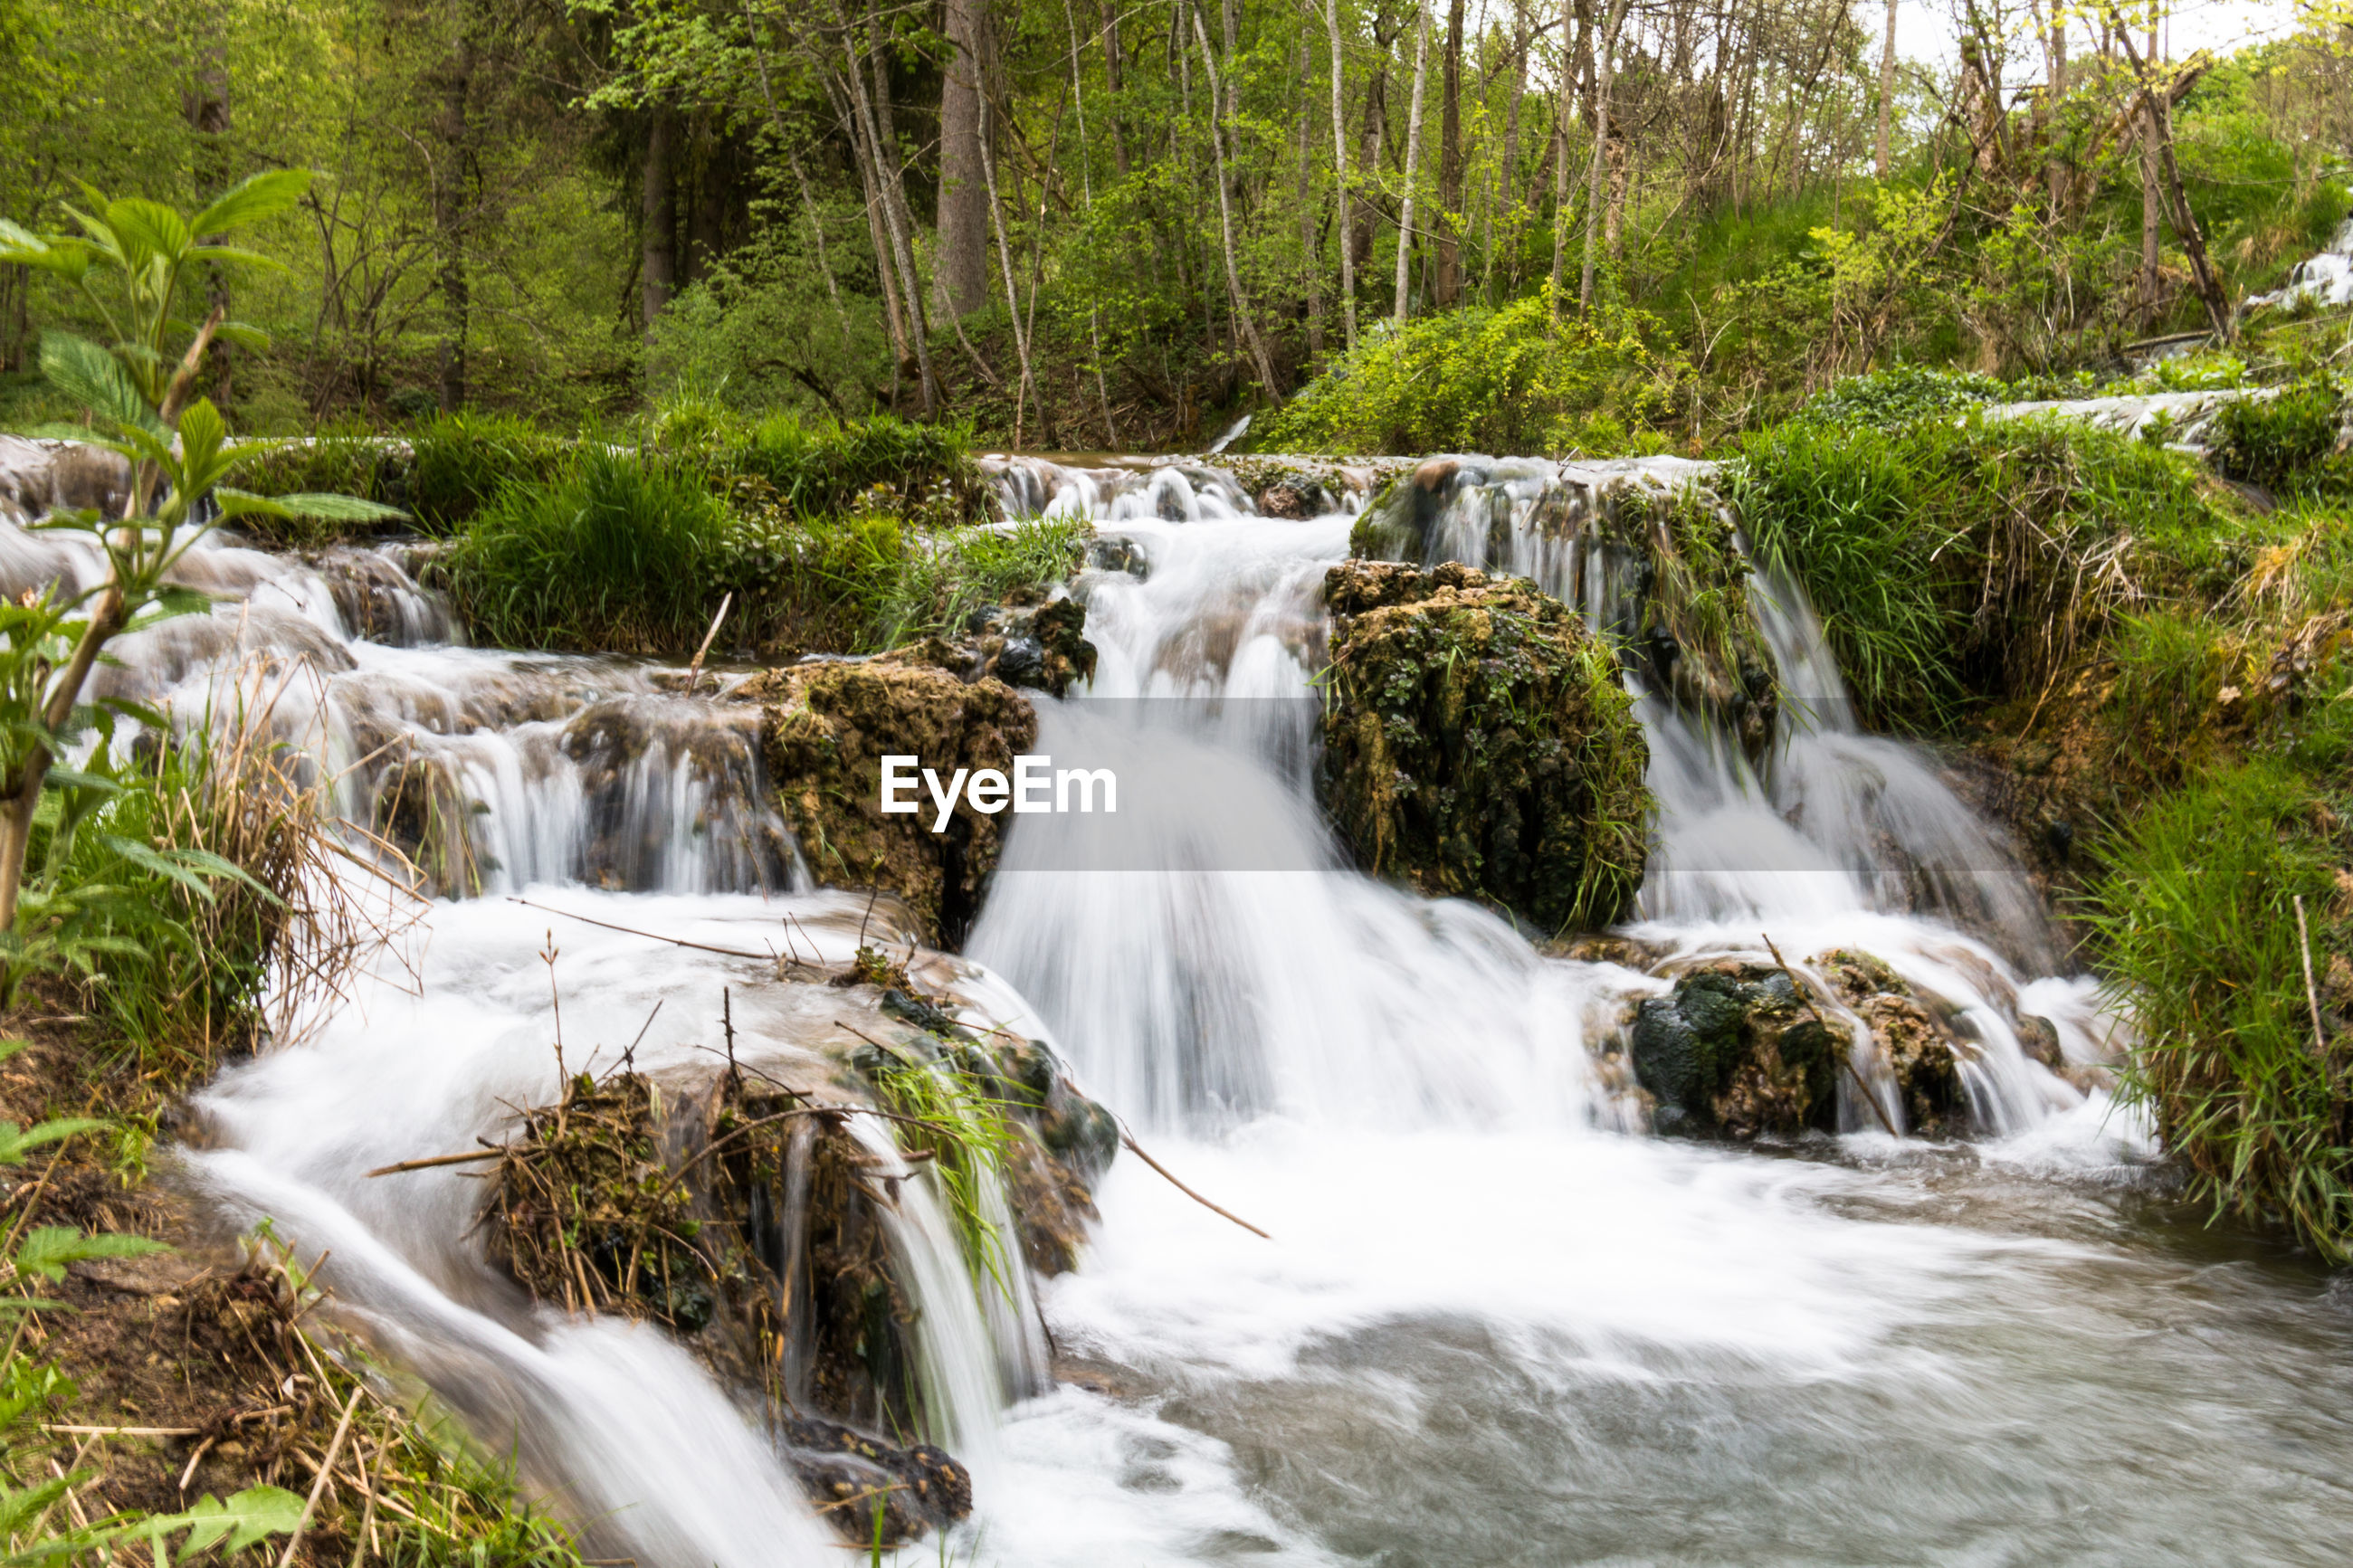 long exposure, tree, scenics - nature, motion, forest, beauty in nature, plant, flowing water, blurred motion, waterfall, water, land, solid, no people, nature, rock, environment, rock - object, day, flowing, outdoors, power in nature, rainforest, stream - flowing water, woodland, falling water